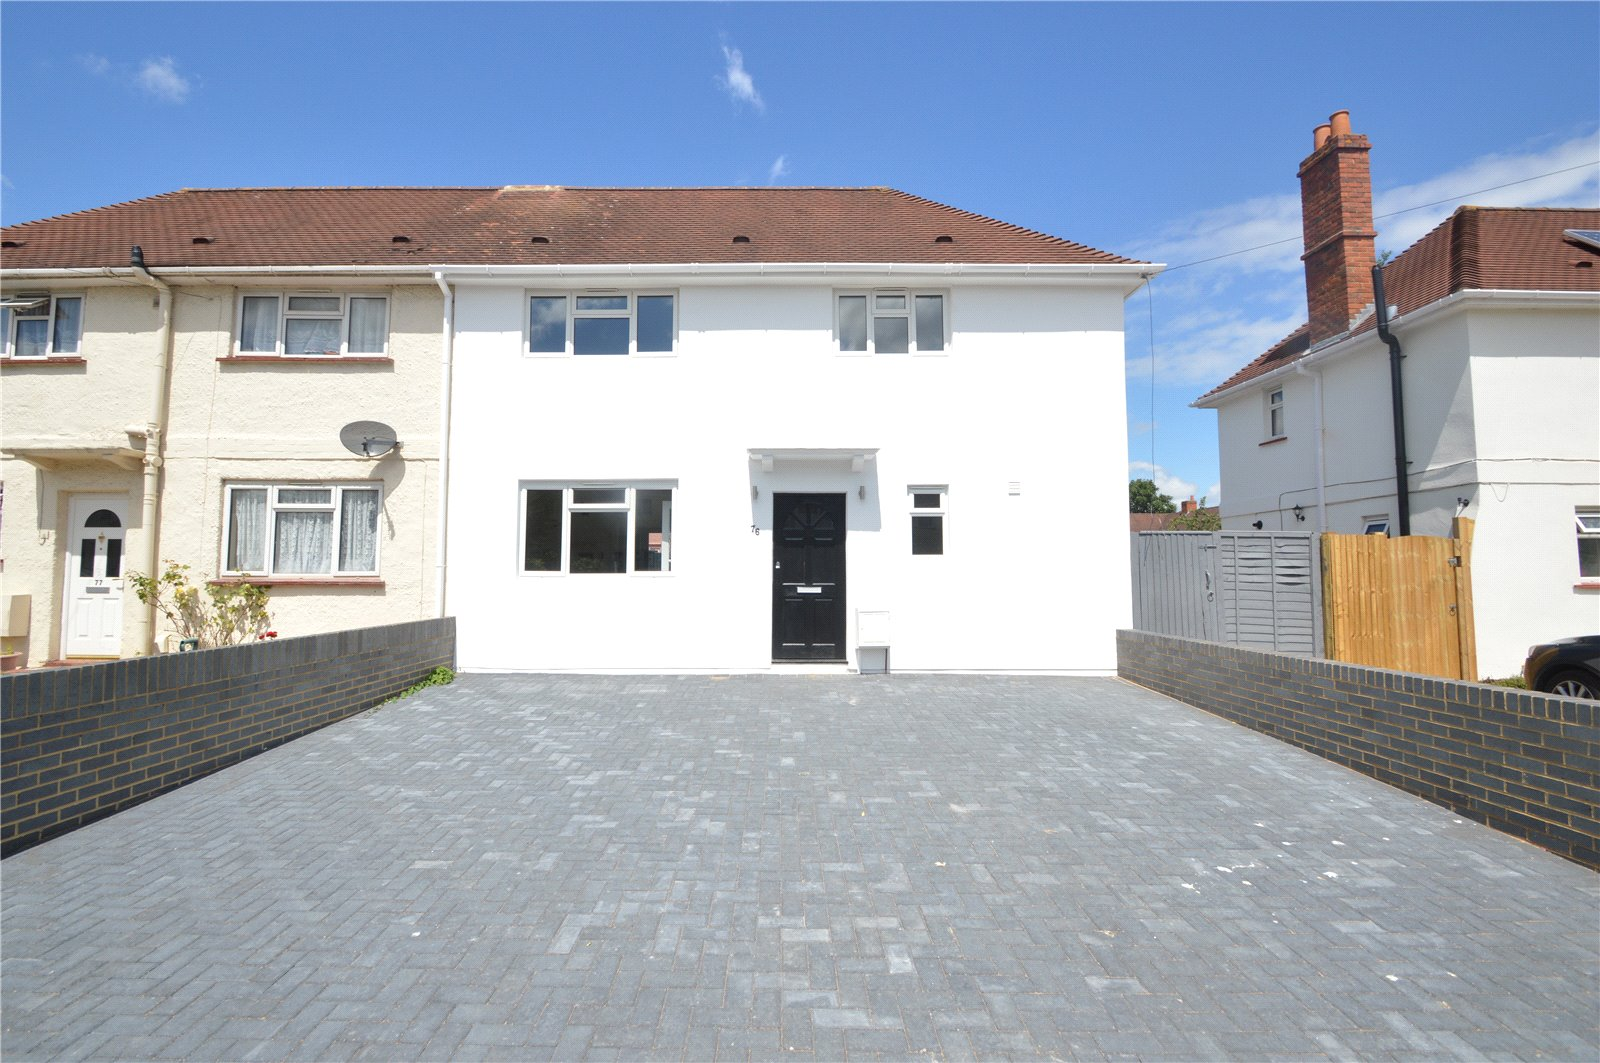 3 Bedrooms Semi Detached House for sale in Ellington Park, Maidenhead, Berkshire, SL6